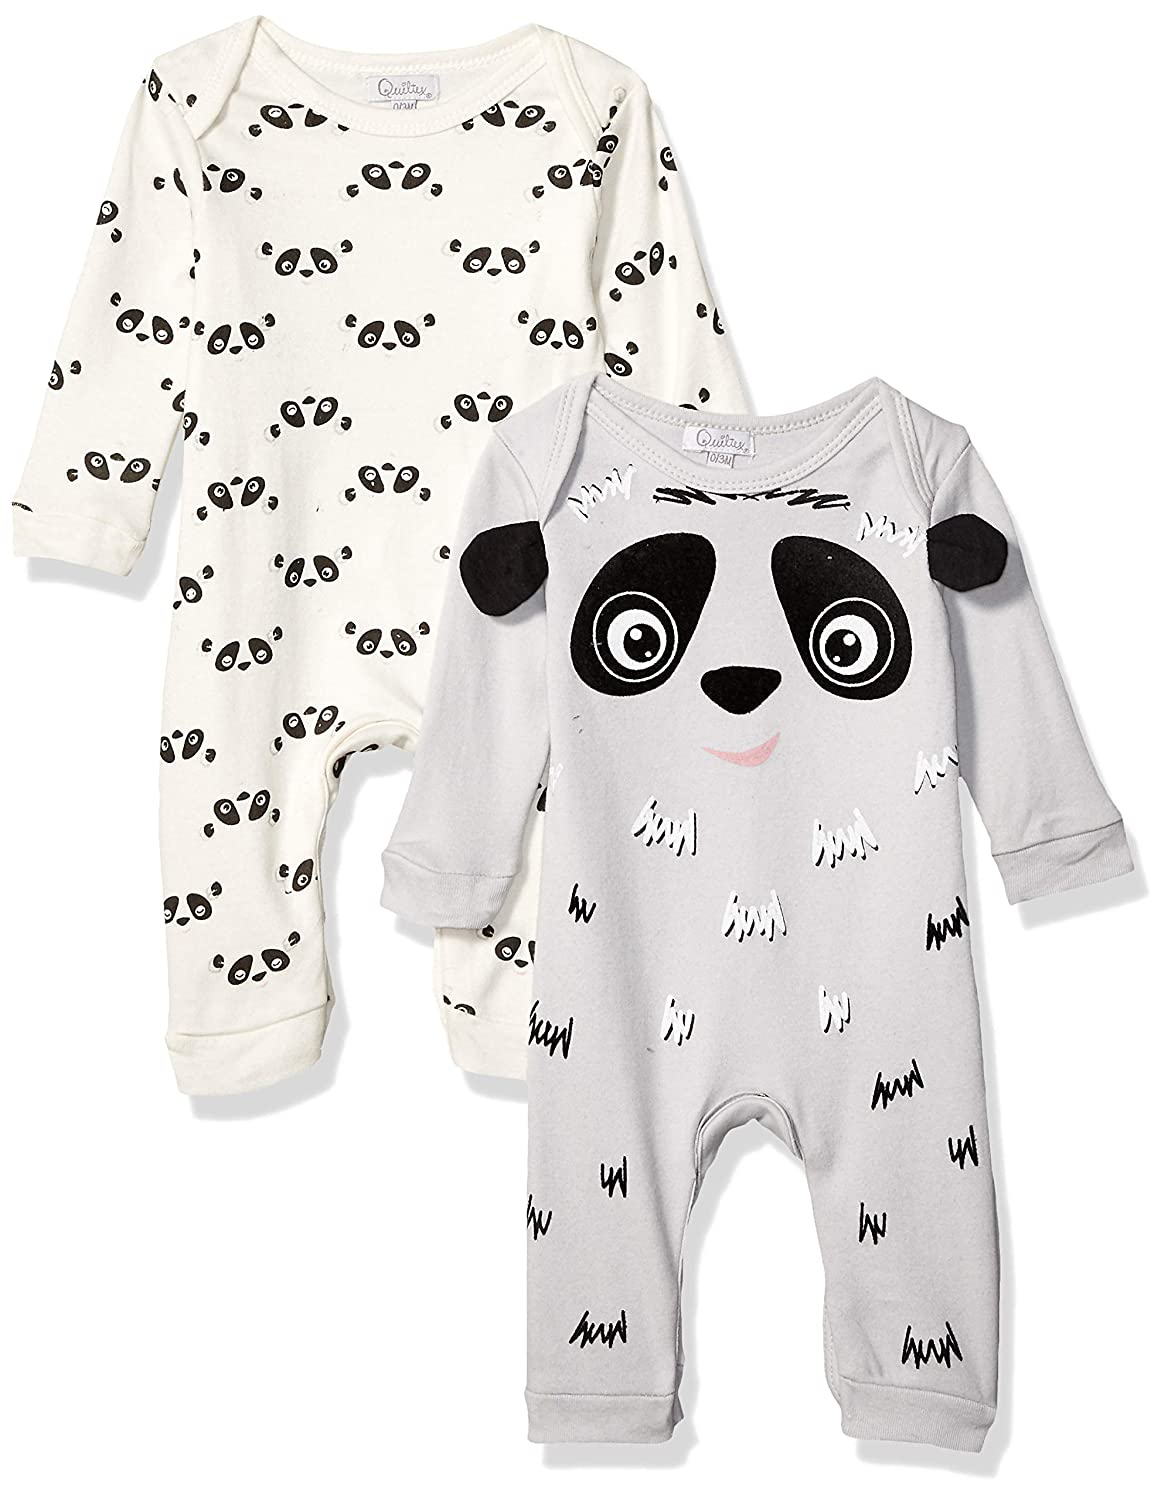 Quiltex Boys Toddler Panda Print Cute Novelty Coverall 2 Pack Set